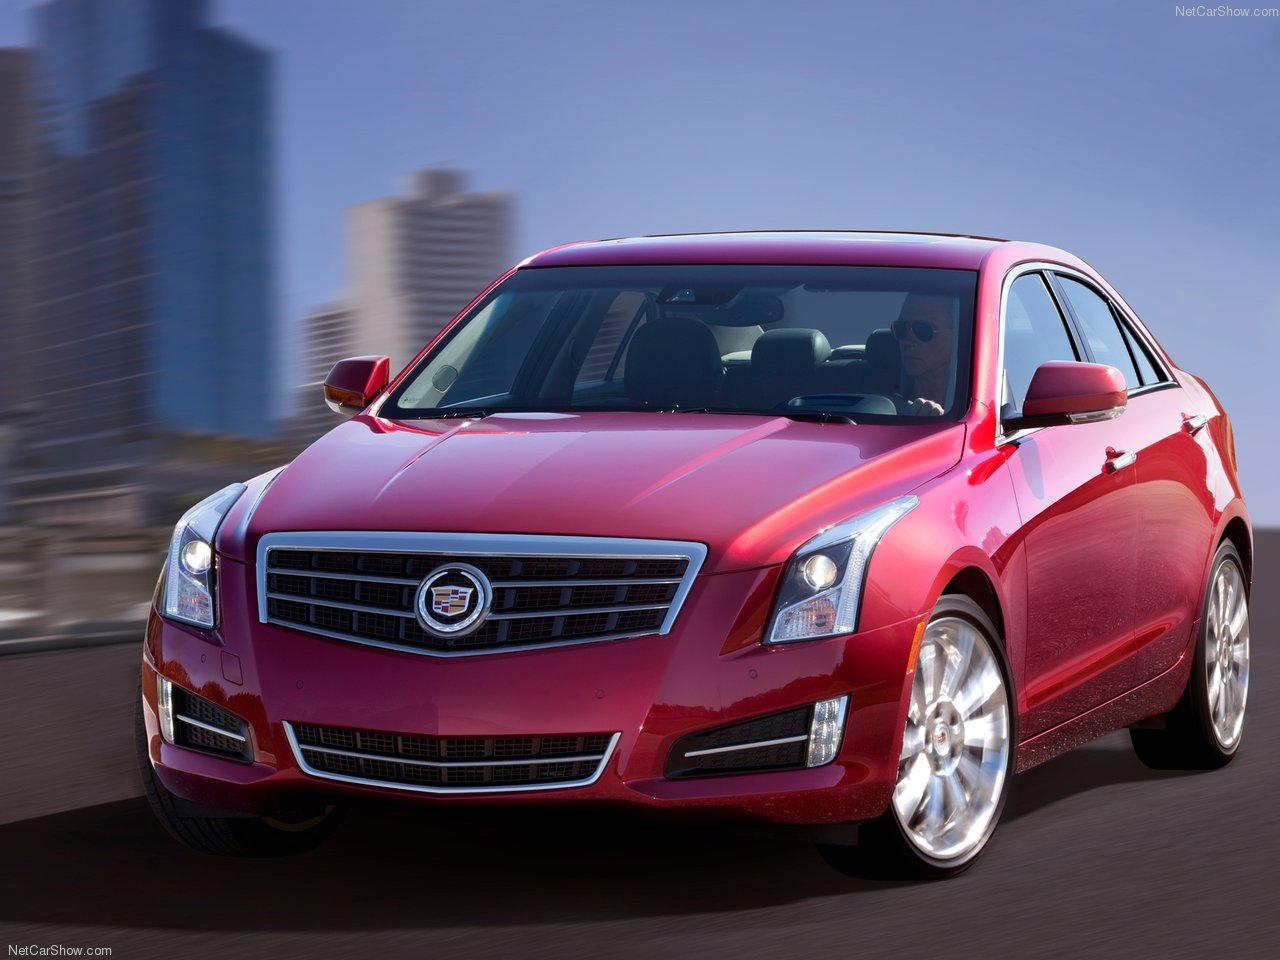 Cadillac ATS photo 88410